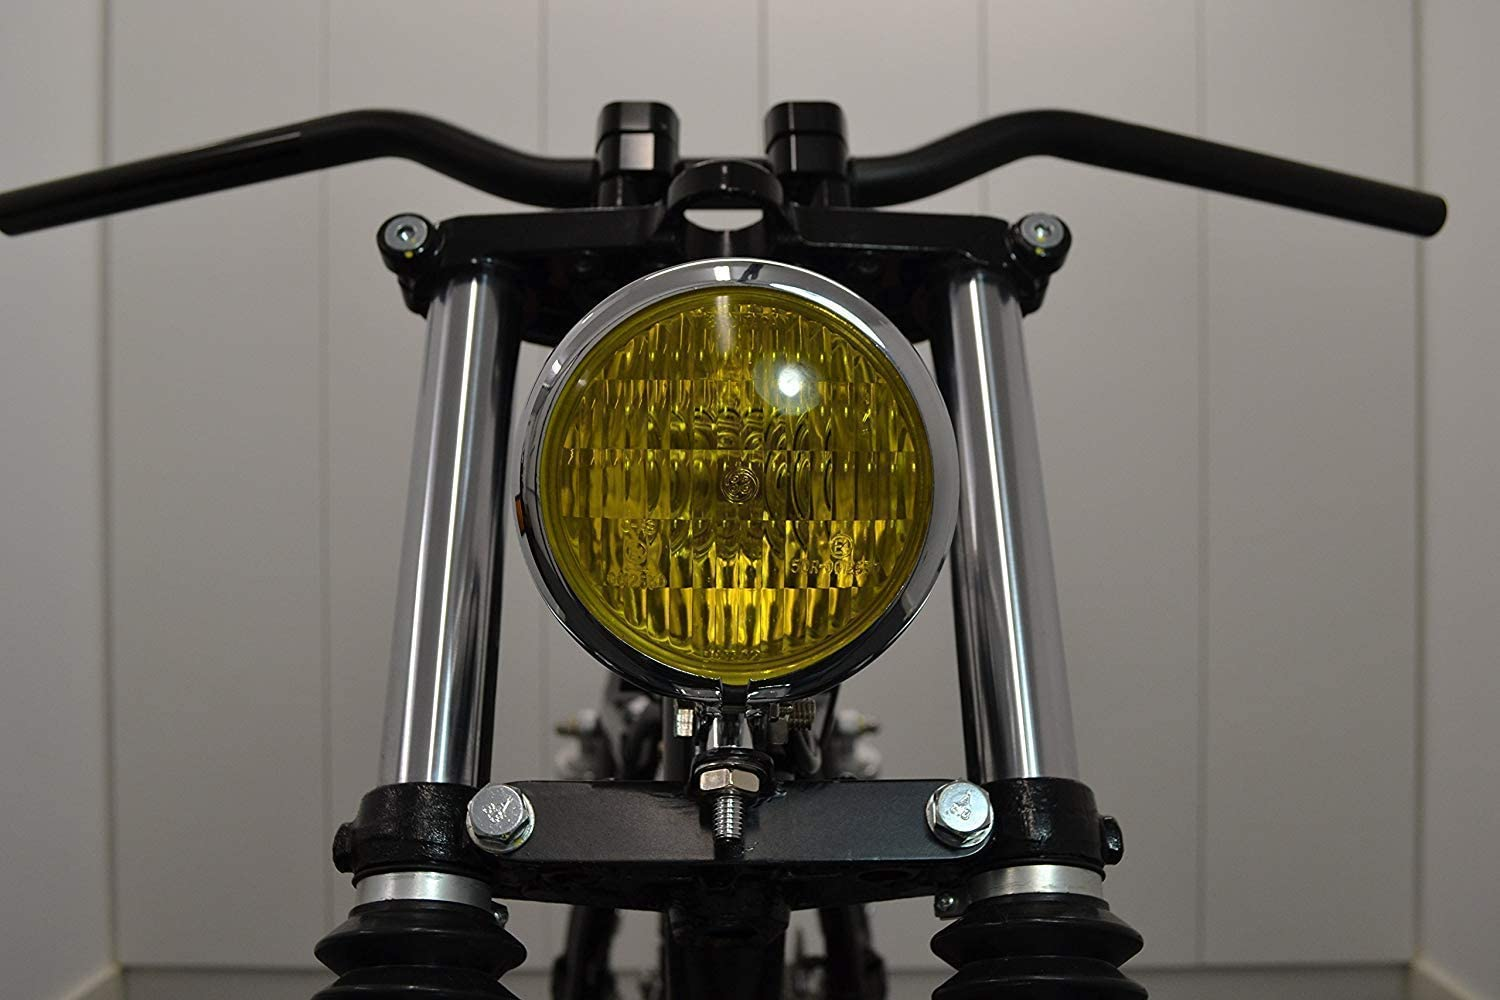 4.75 120mm Chrome on Metal Headlight with Yellow Lense ideal for Retro look Chopper Cafe Racer Motorcycle Motorbike